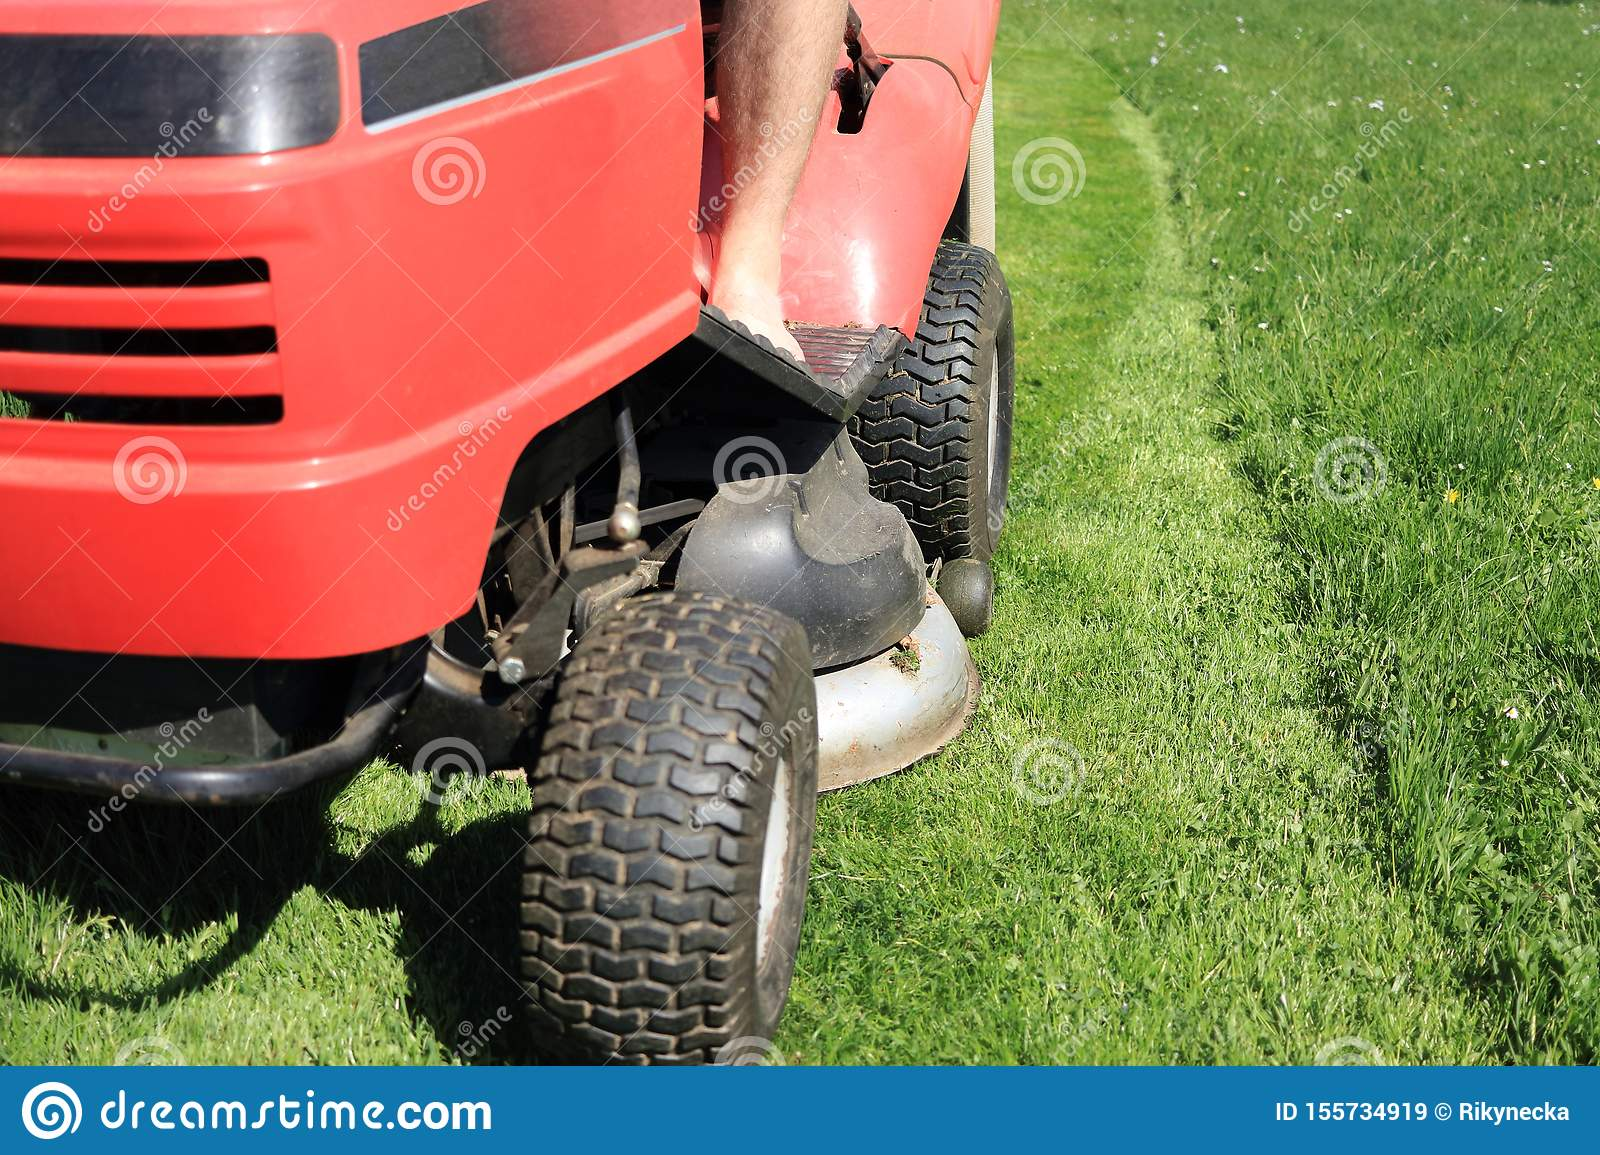 Red Riding Lawn Mower Lawnmower Ride On Mower In Garden Stock Image Image Of Deck High 155734919